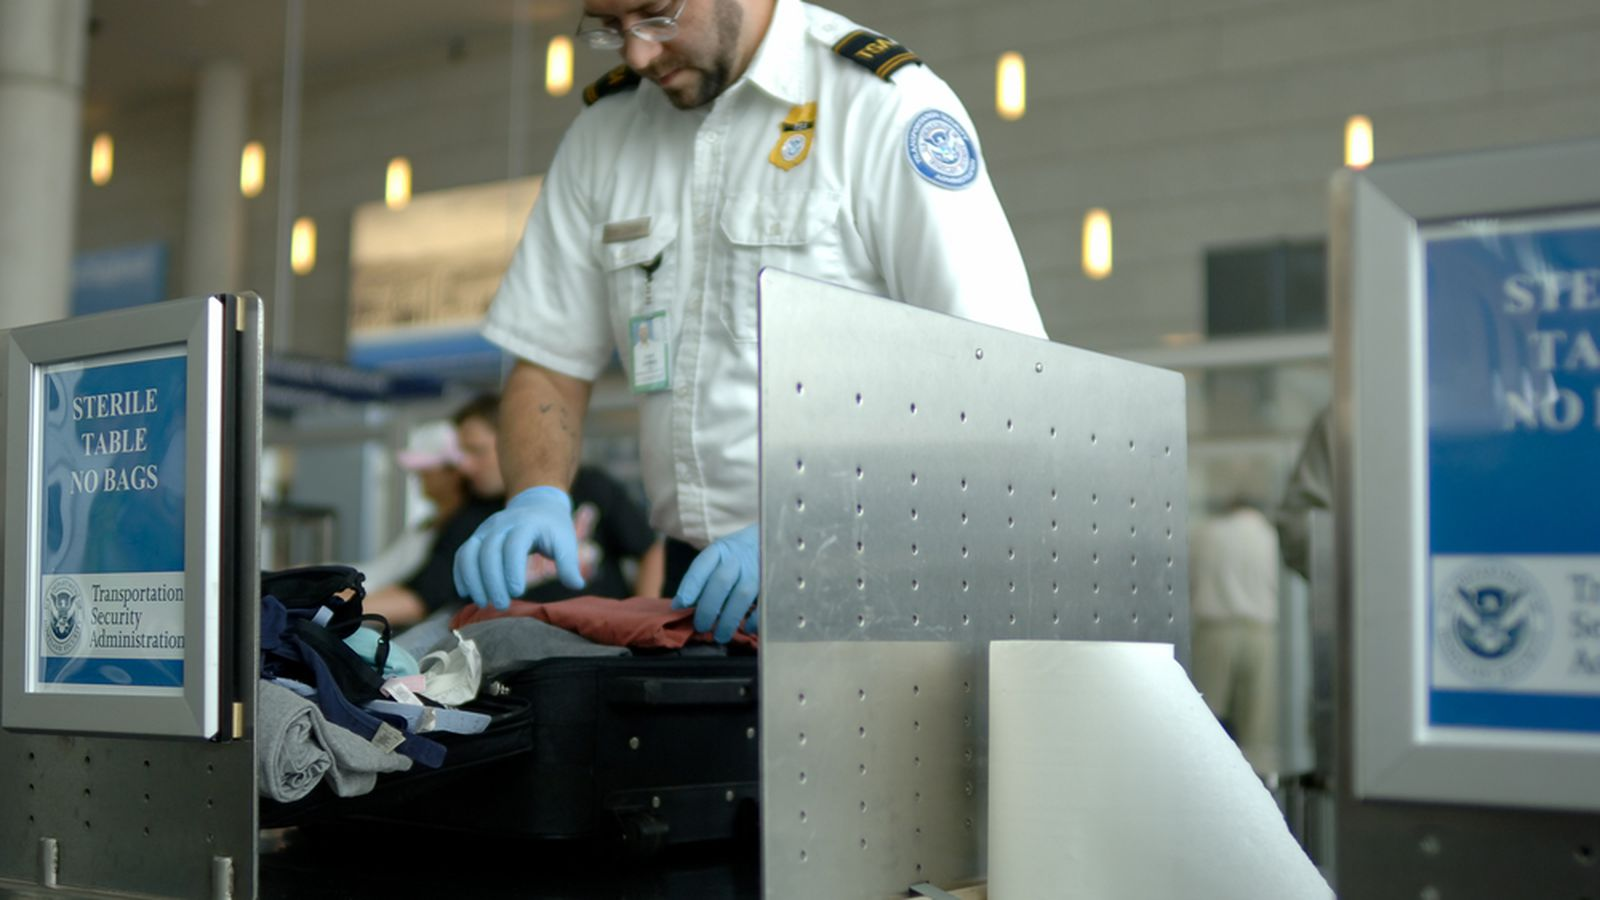 Leaked cia documents show how to beat airport security like a spy the verge - Security guard hd images ...